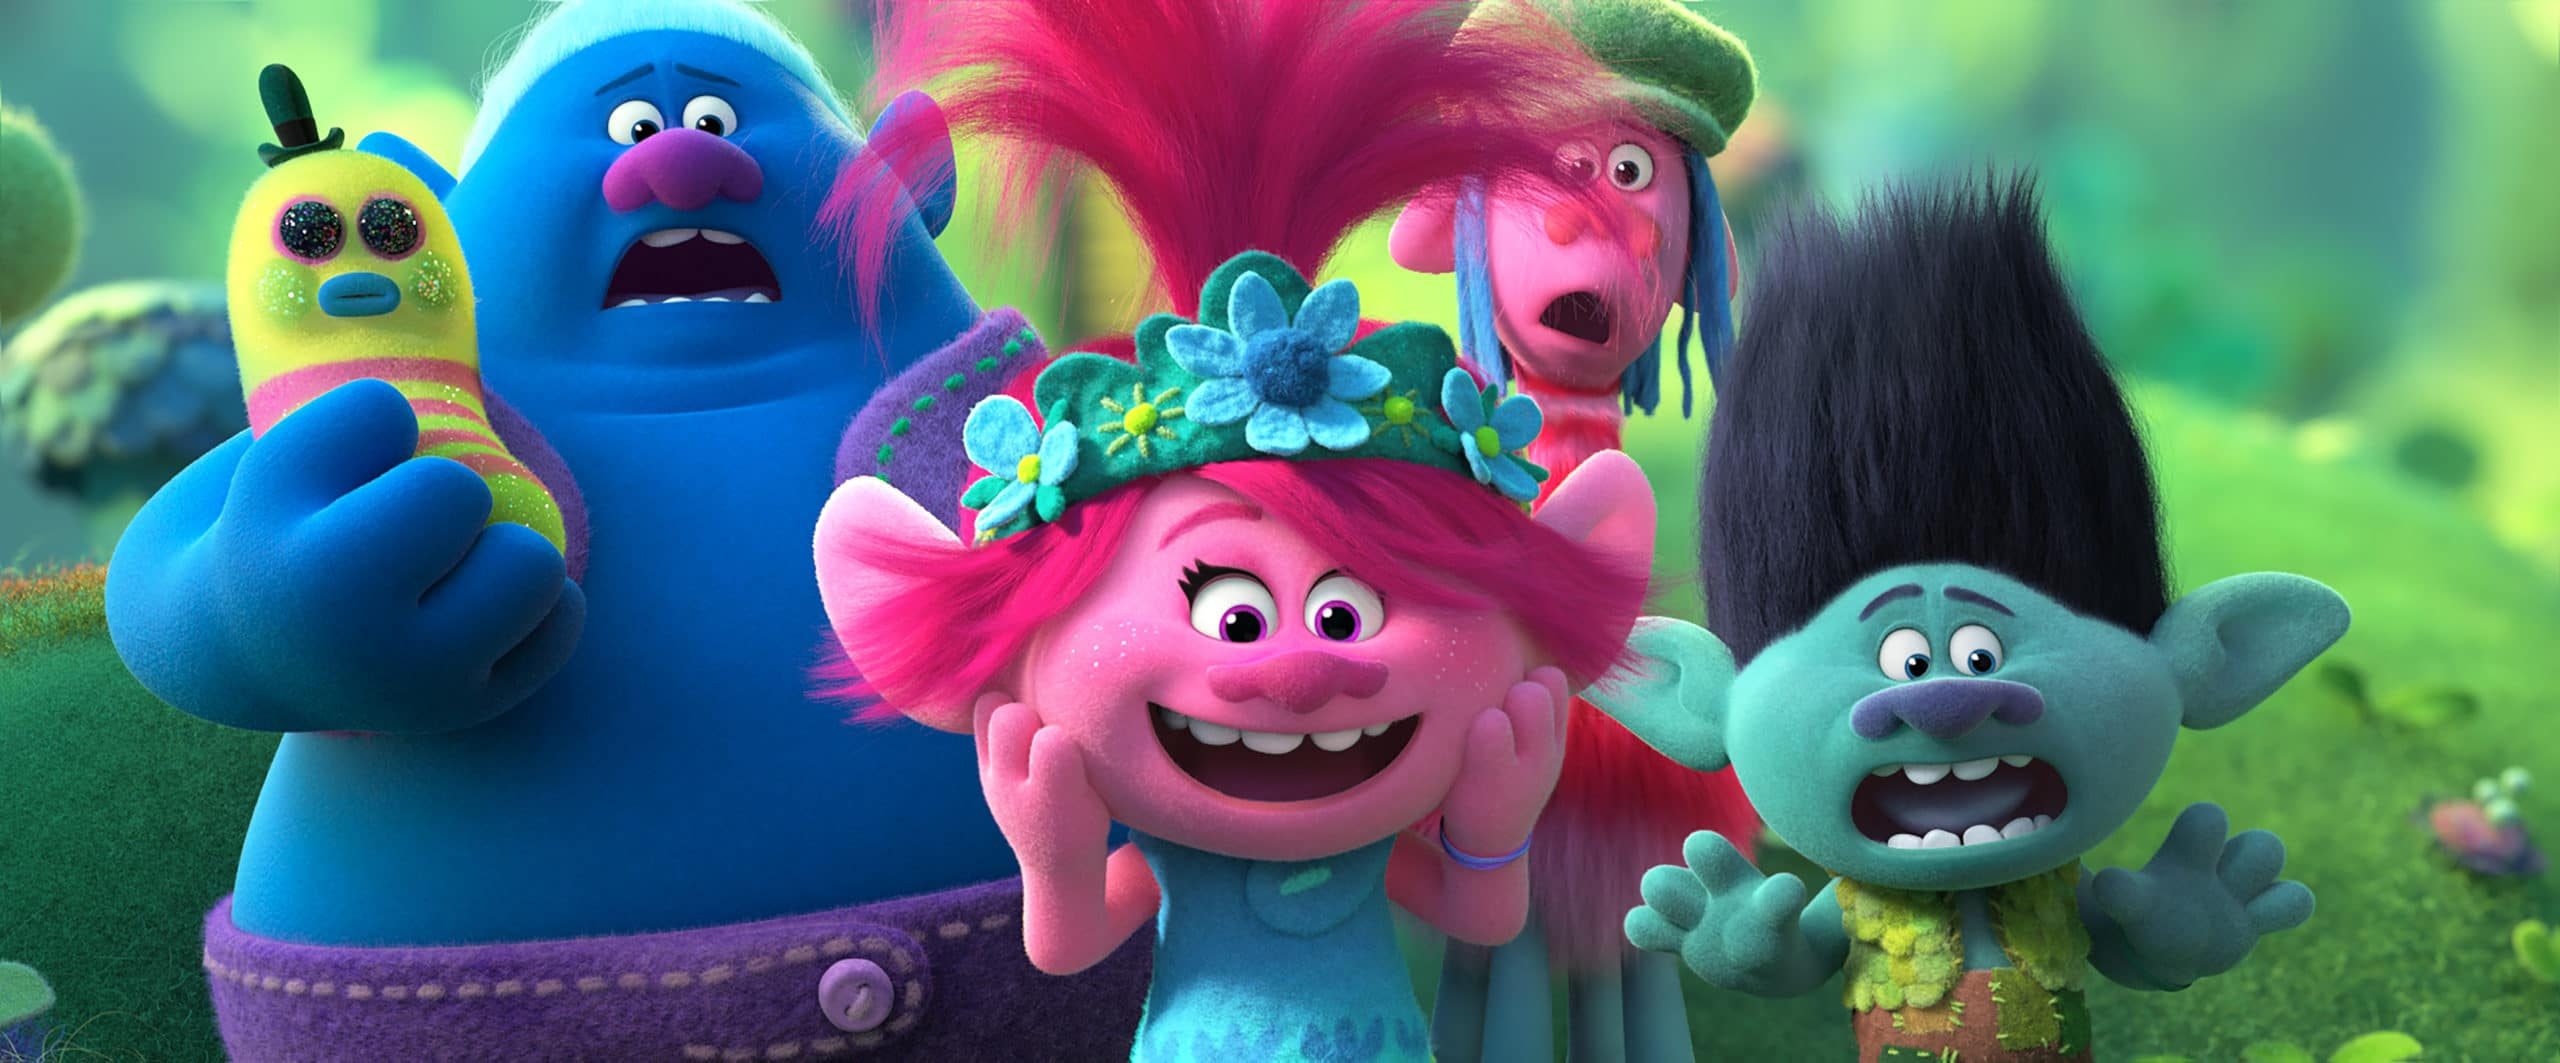 Biggie (James Corden), Poppy (Anna Kendrick), Cooper (Ron Funches), and Branch (Justin Timberlake). Queen Poppy, Branch, and the rest of your favorite Trolls are back for another musical adventure that's bigger and louder than ever before! In TROLLS WORLD TOUR, Poppy and Branch discover that their kingdom is only one of six musical realms Funk, Country, Techno, Classical, Pop, and Rock that was once united in perfect harmony.